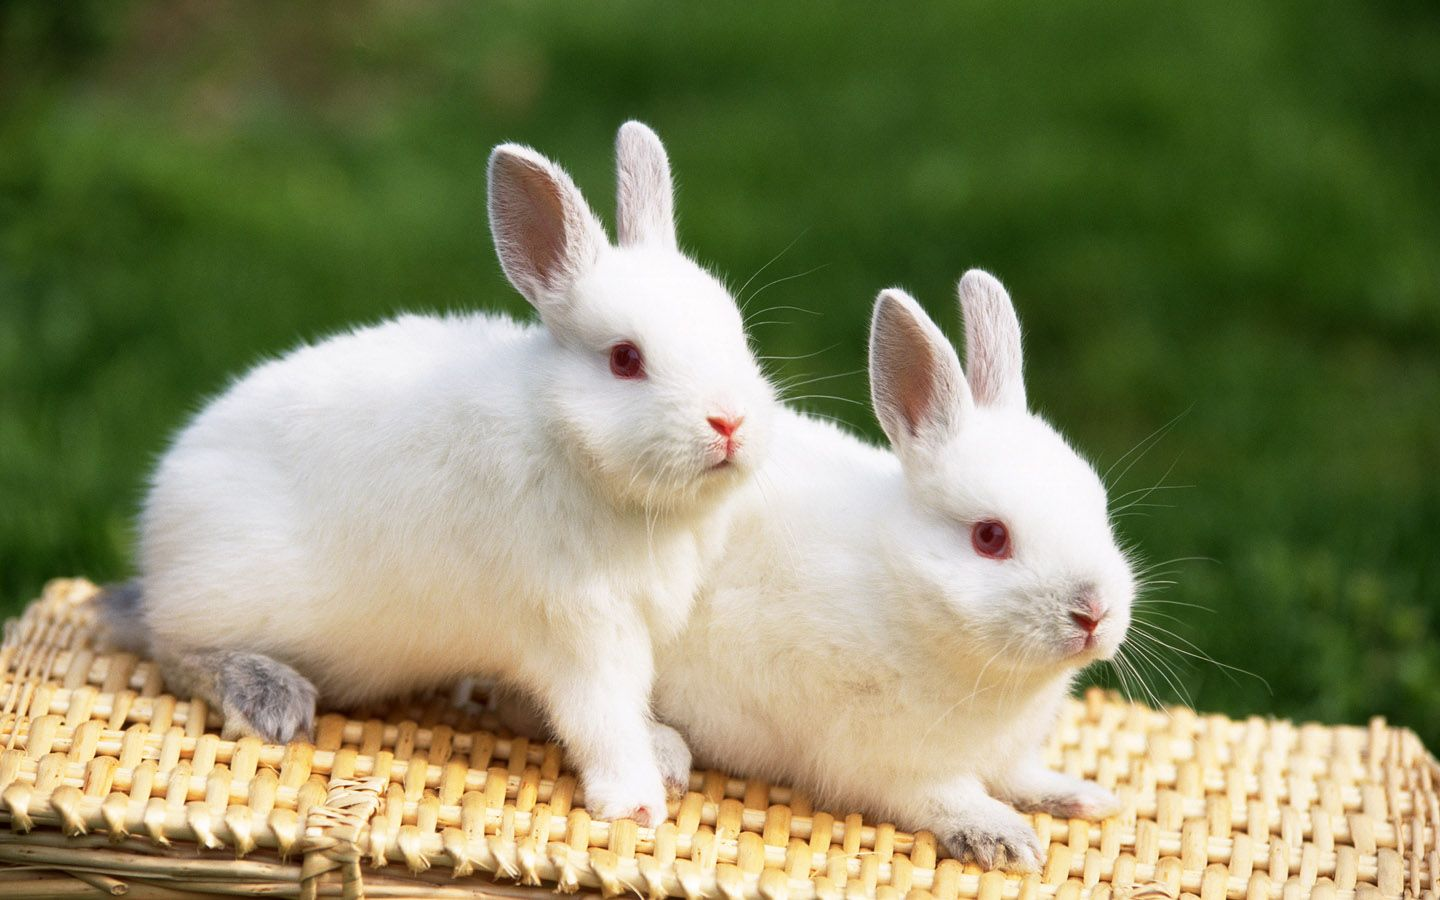 Cool Animals Pictures: 20 Rabbit Wallpapers Funny and Cute